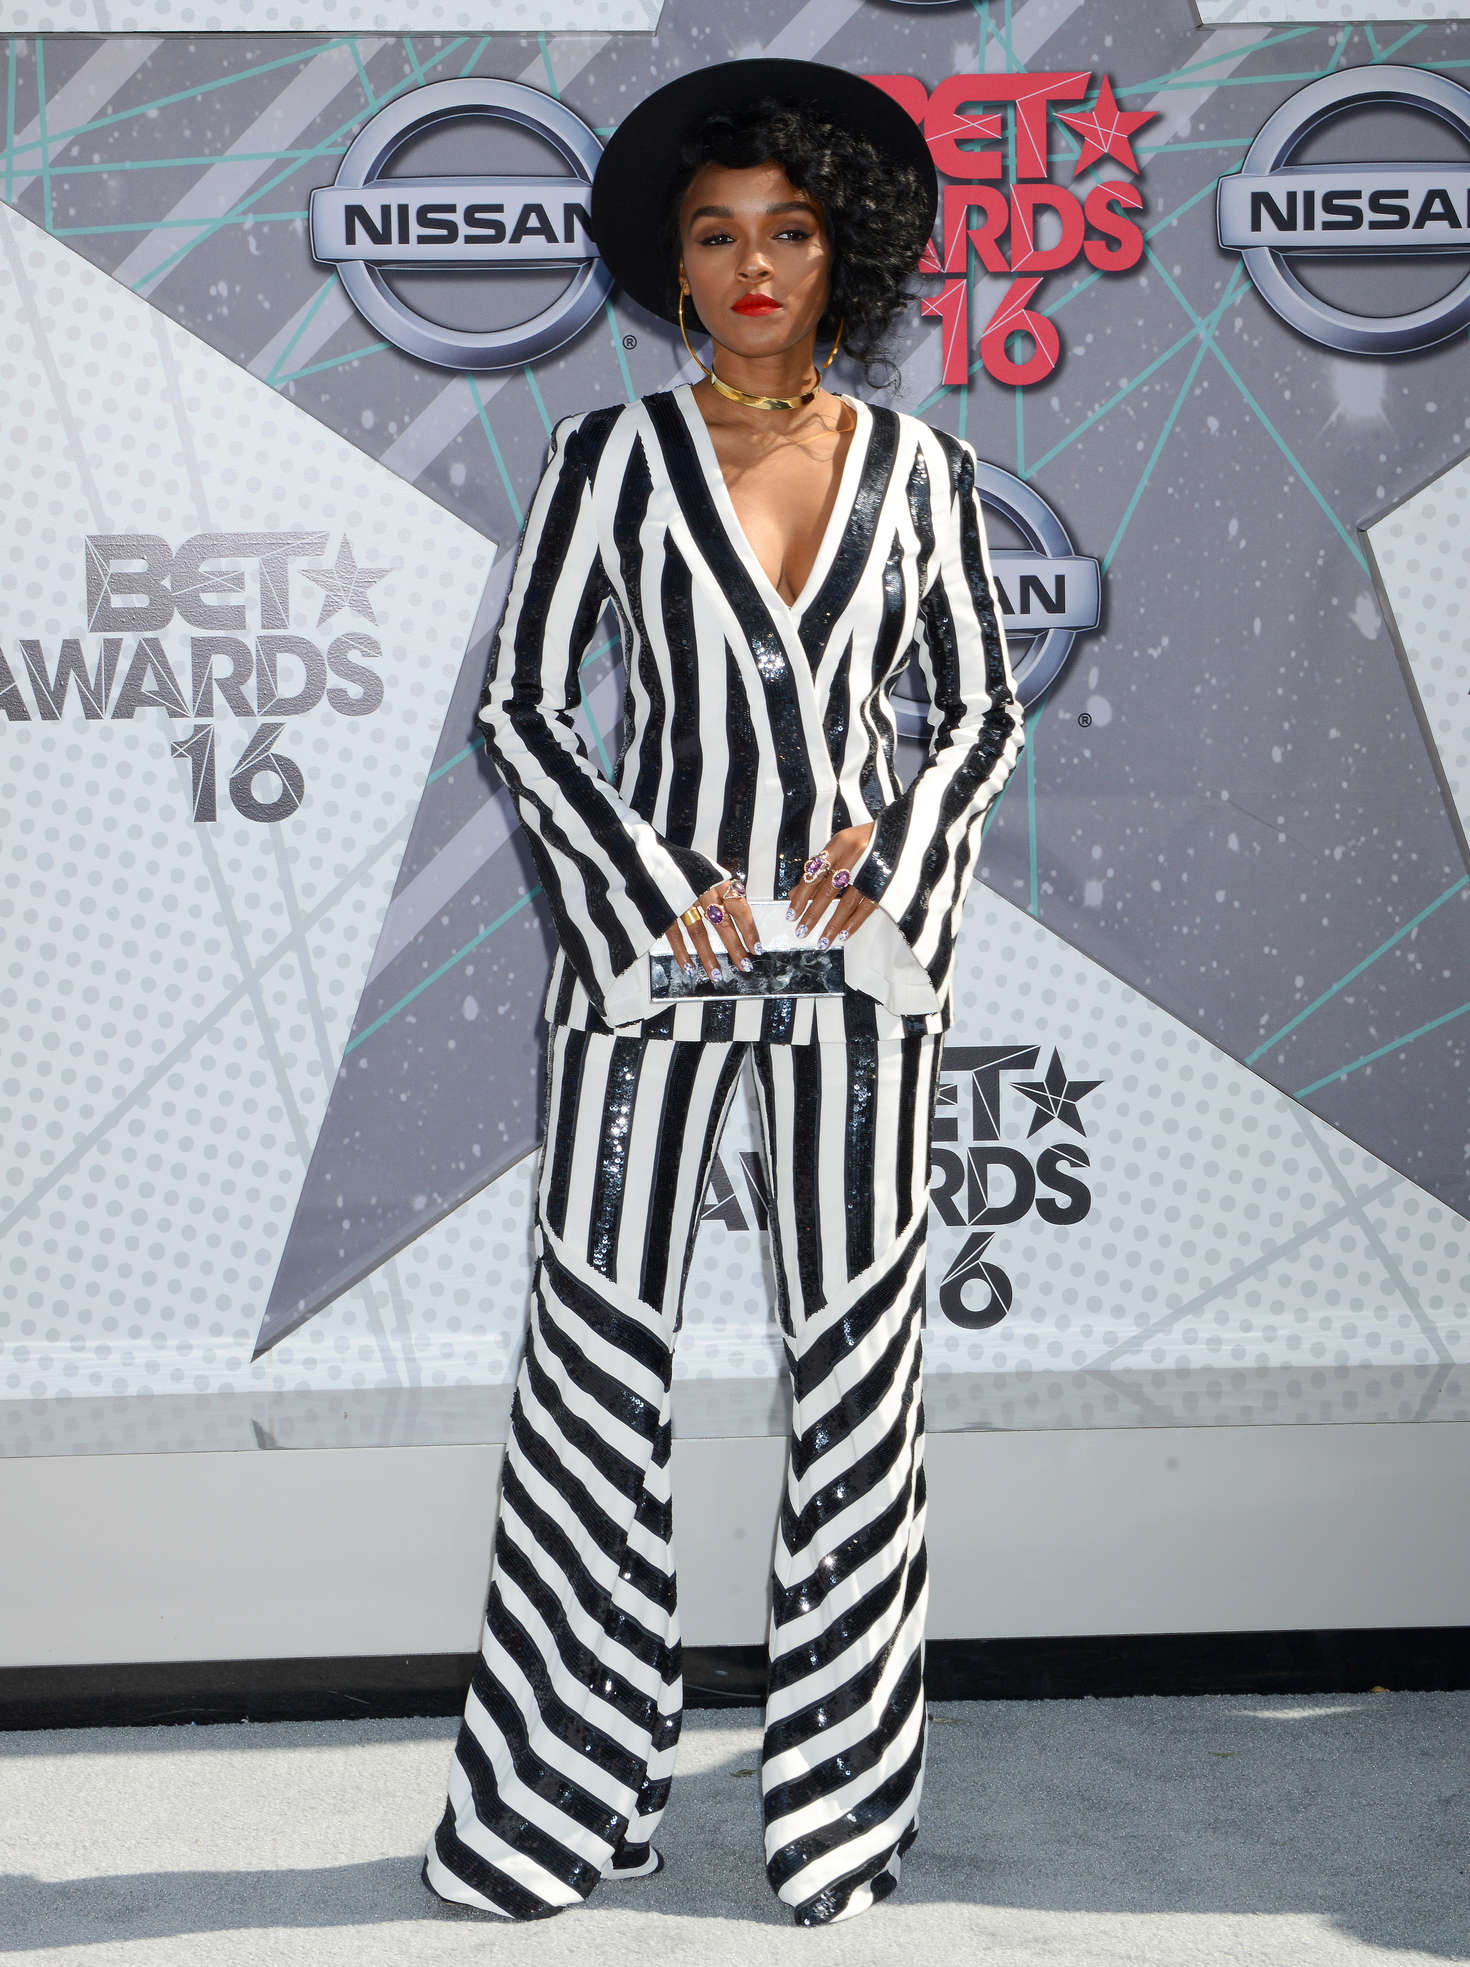 Home Cute Wallpapers Janelle Monae Bet Awards 2016 In Los Angeles